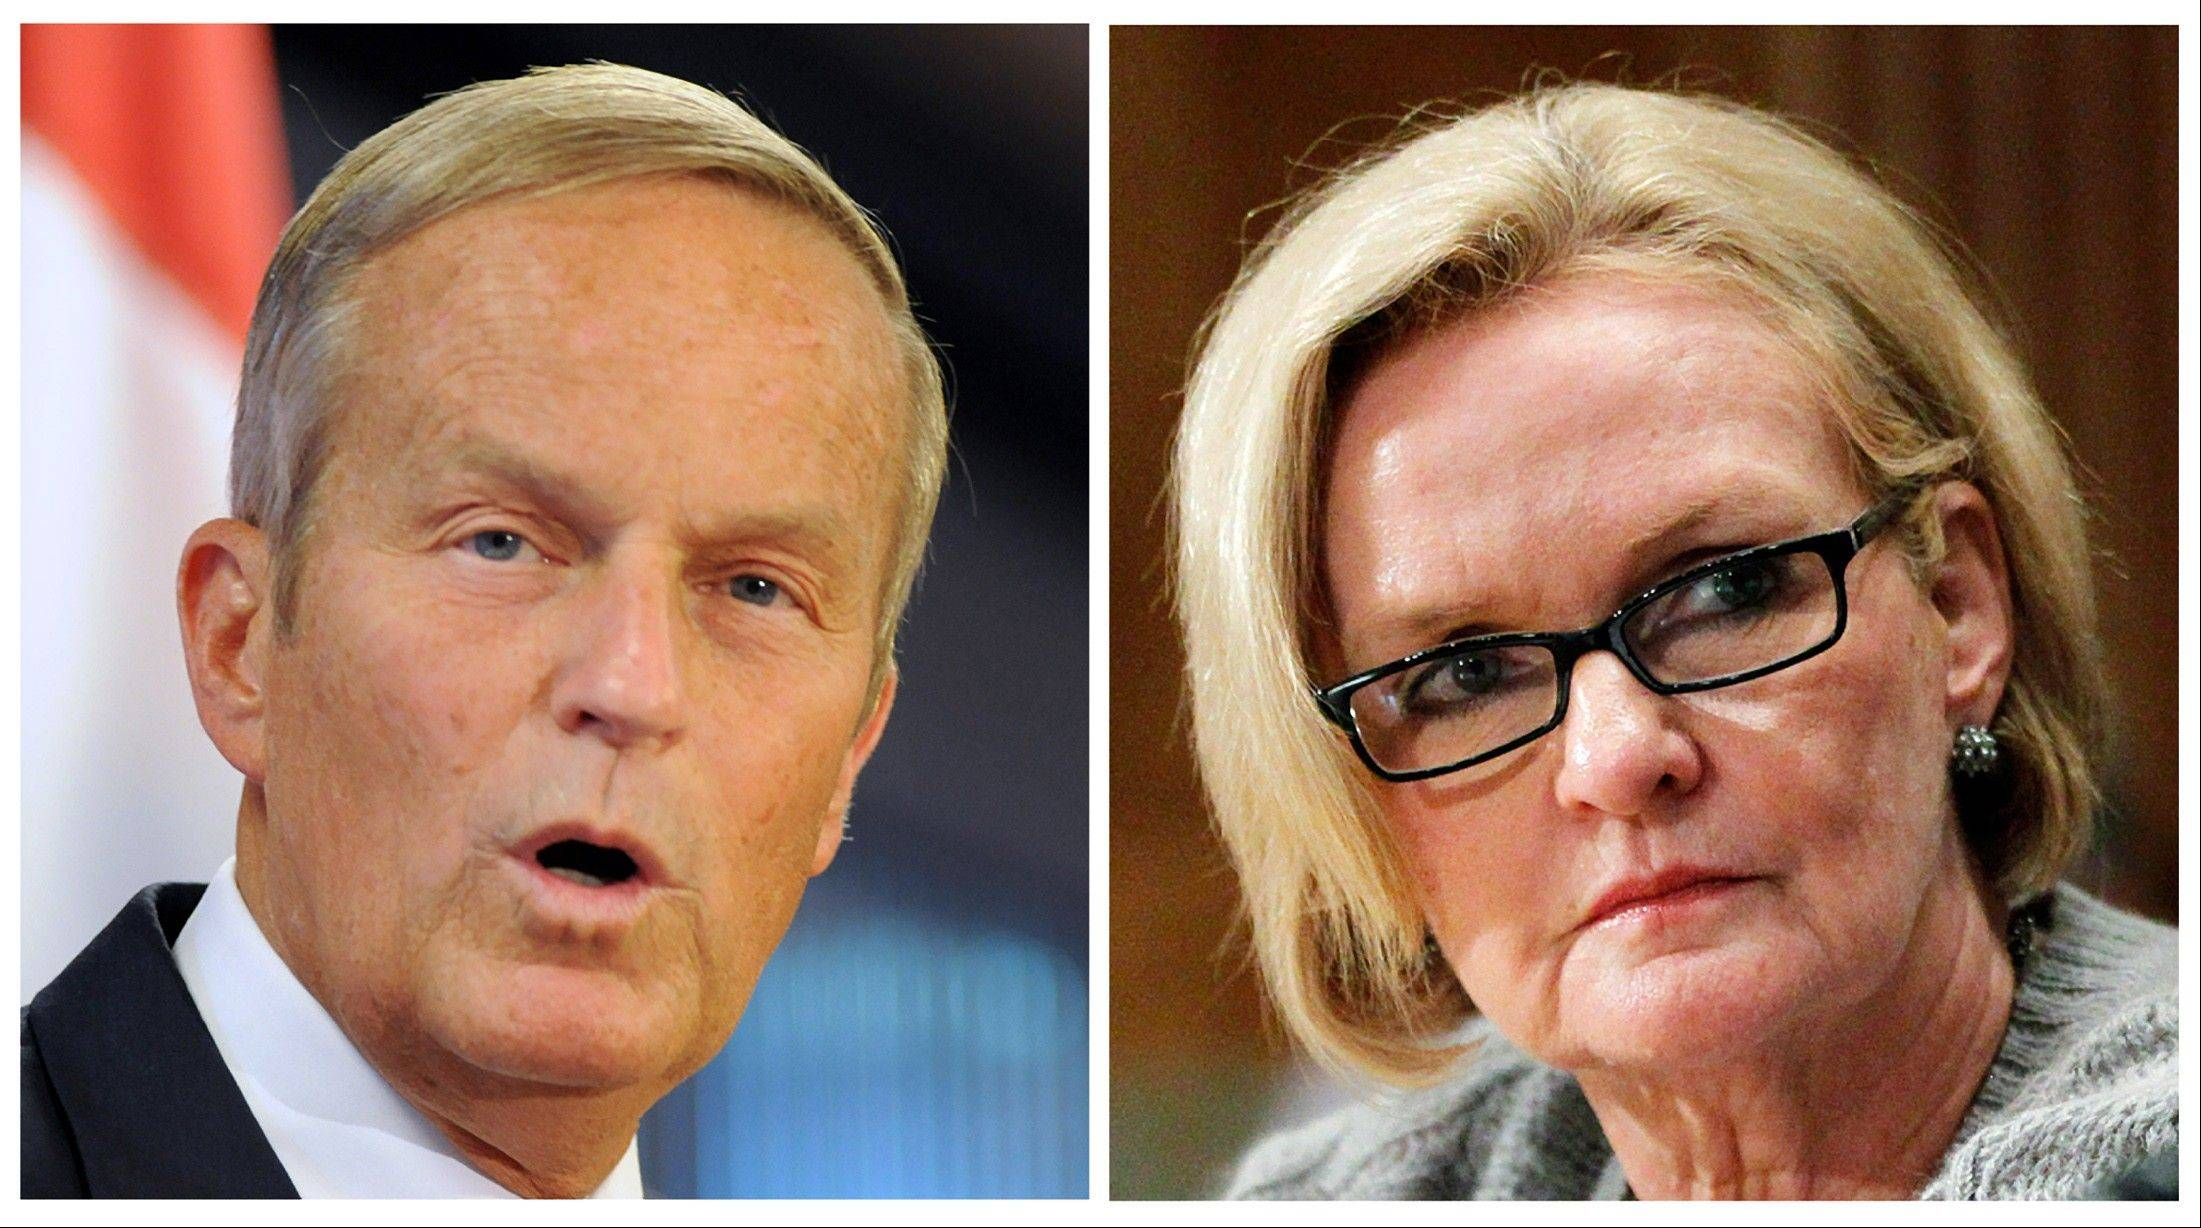 In Missouri, U.S. Rep. Todd Akin, left, was deserted by the Republican establishment after he remarked in August that women�s bodies have ways of avoiding pregnancy in cases of what he called �legitimate rape.� He has fallen behind Sen. Claire McCaskill, who had been considered the most vulnerable Democratic incumbent in the Senate.